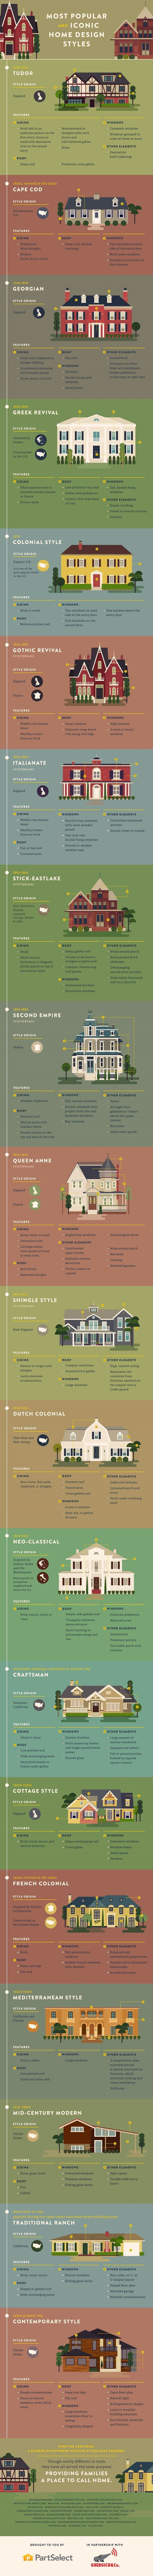 Do You Know the Most Popular Home Styles? http://realtormag.realtor.org/daily-news/2016/08/18/do-you-know-most-popular-home-styles: